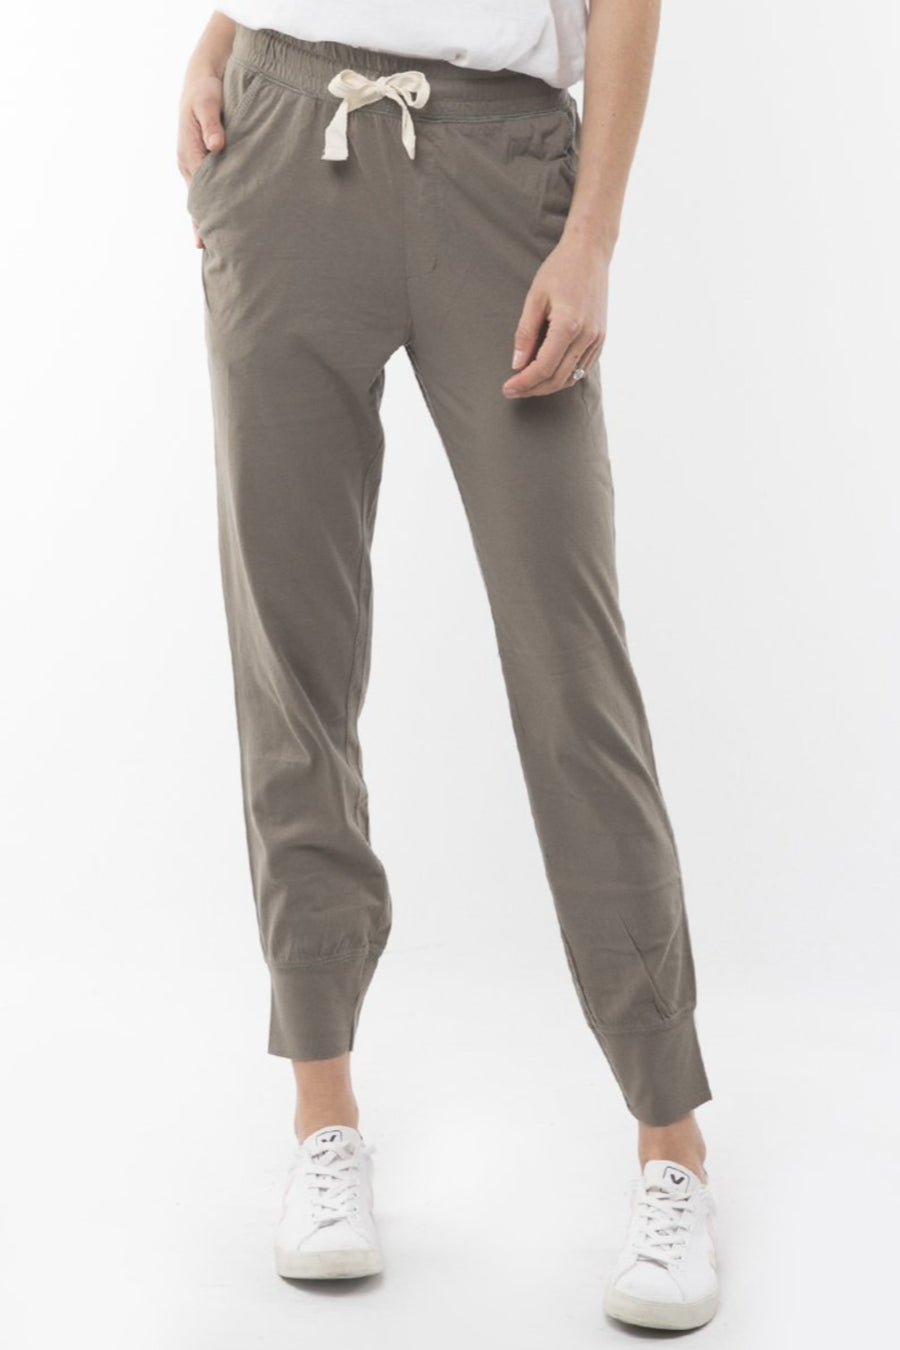 Wash Out Pant Women Khaki | Lyn Rose Boutique